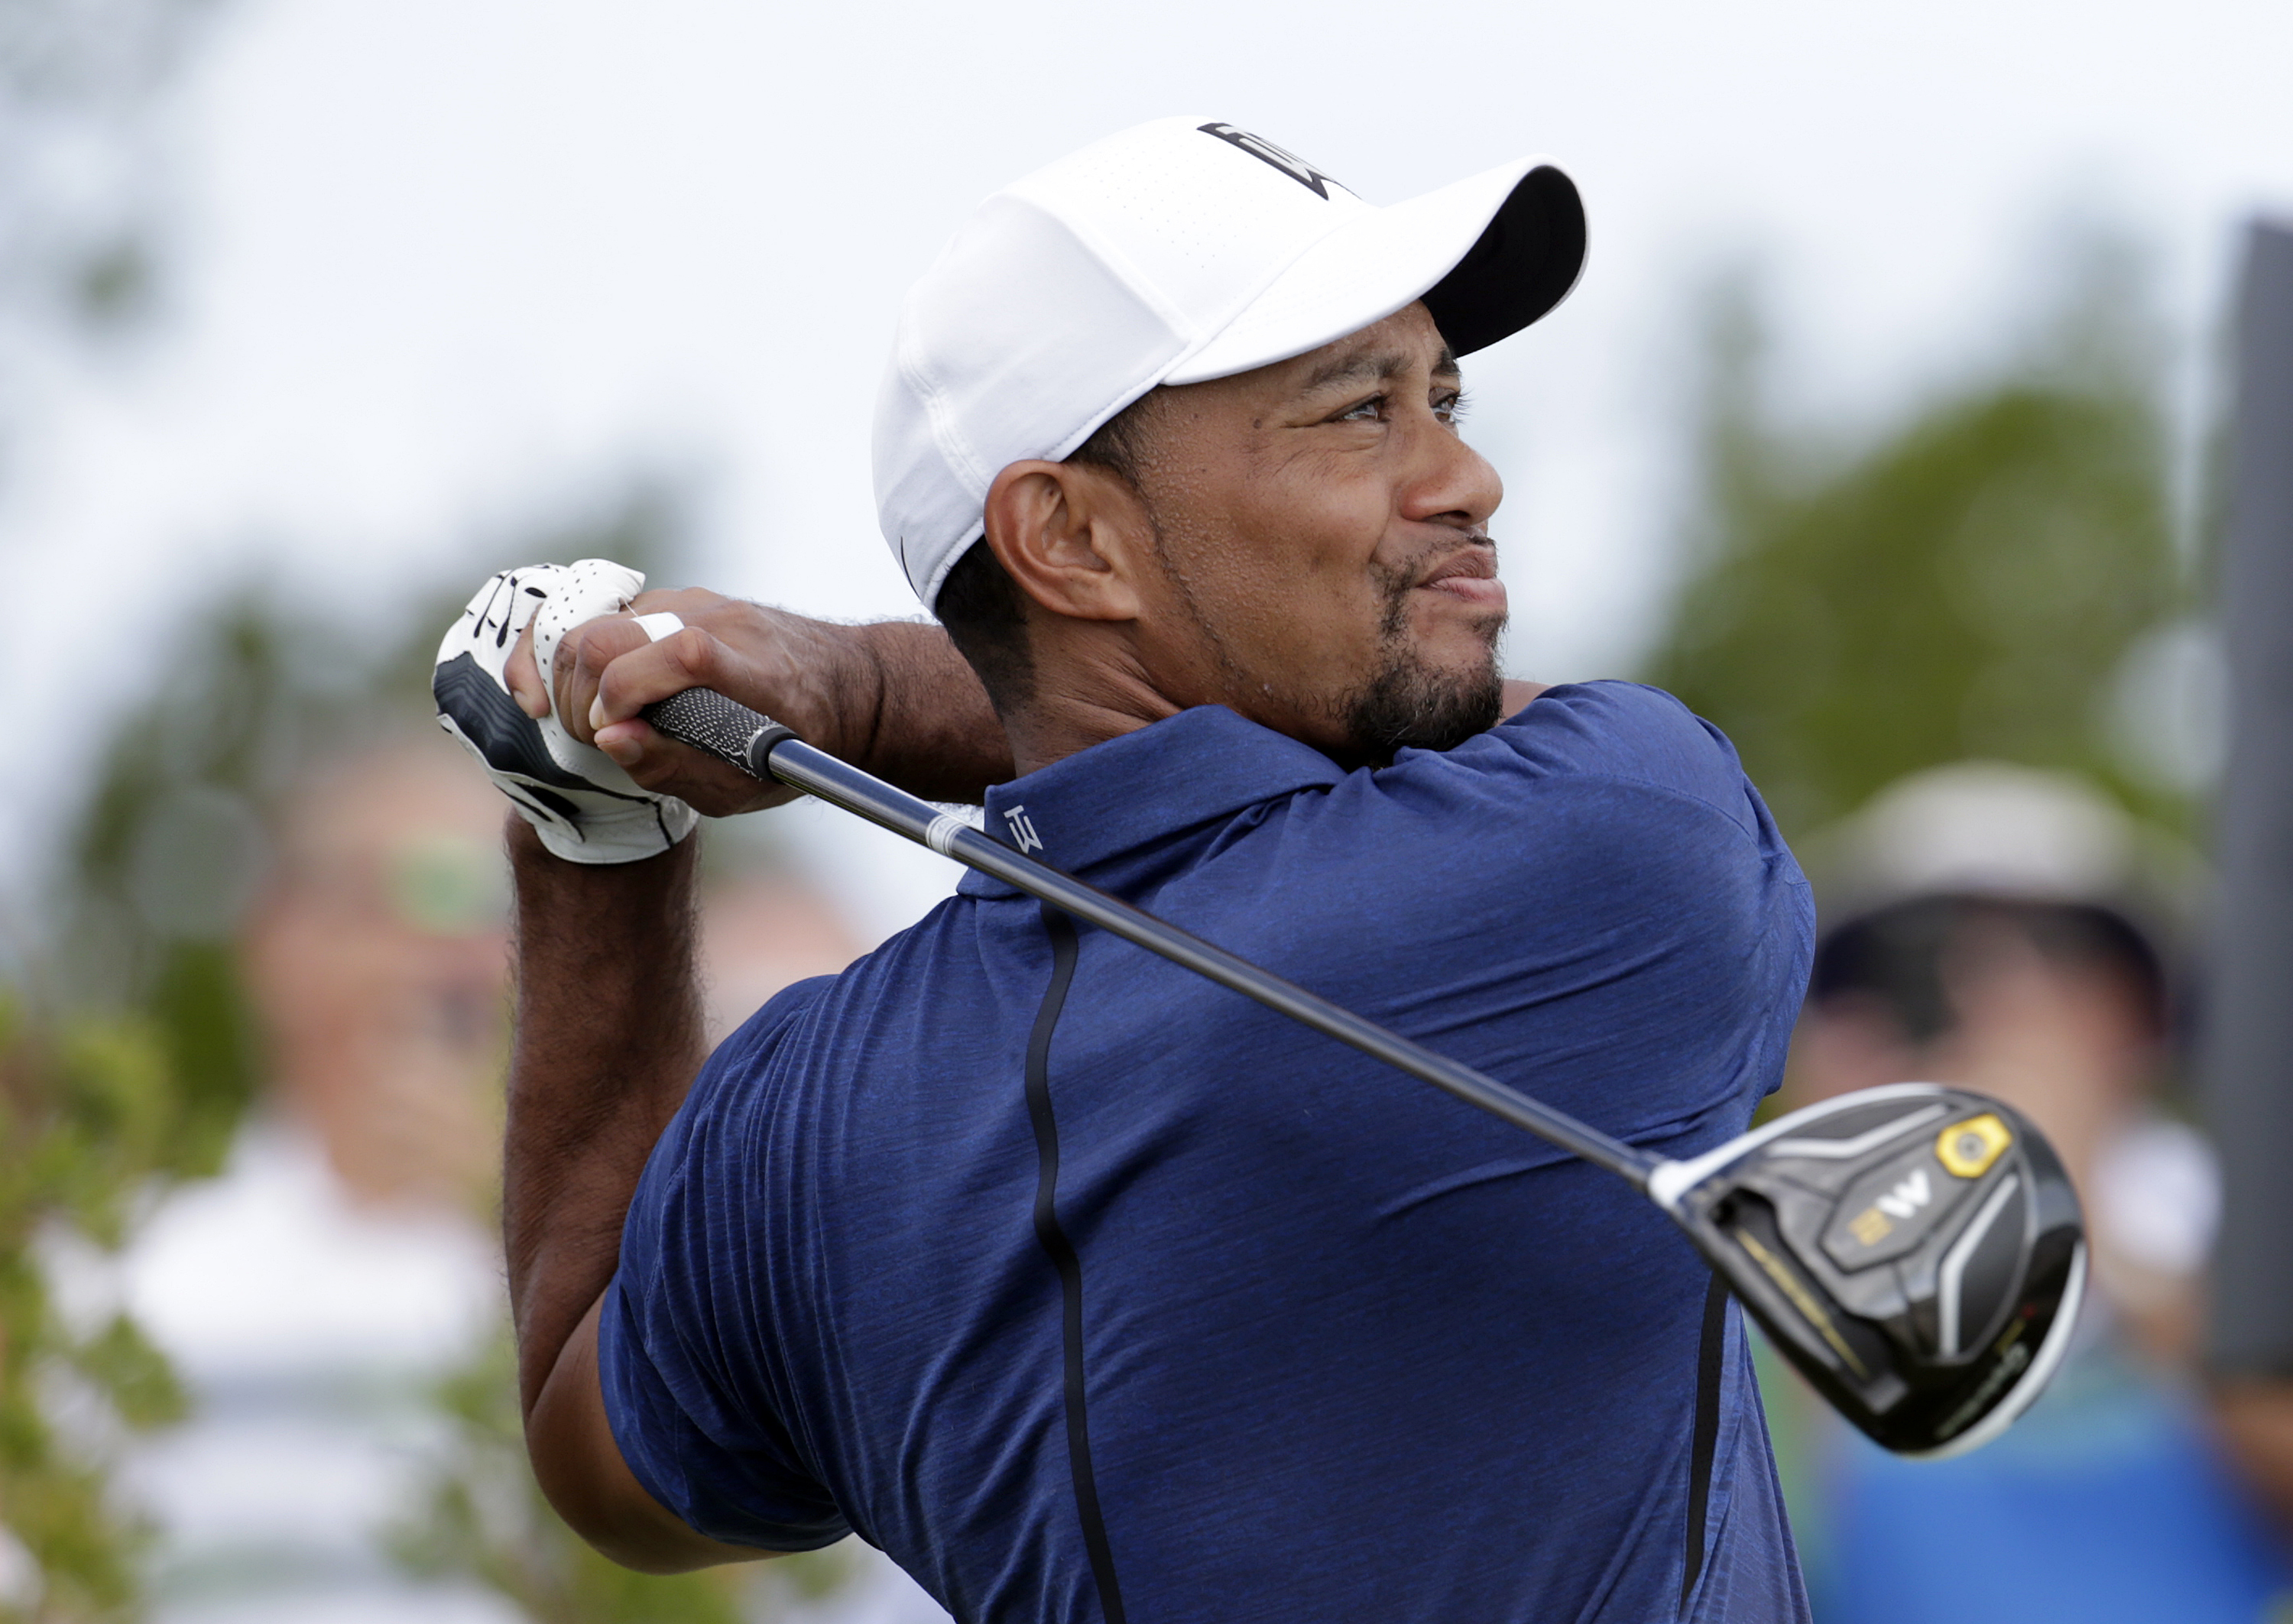 Tiger Woods watches his tee shot on the first hole during the second round at the Hero World Challenge golf tournament, Friday, Dec. 2, 2016, in Nassau, Bahamas. (AP Photo/Lynne Sladky)